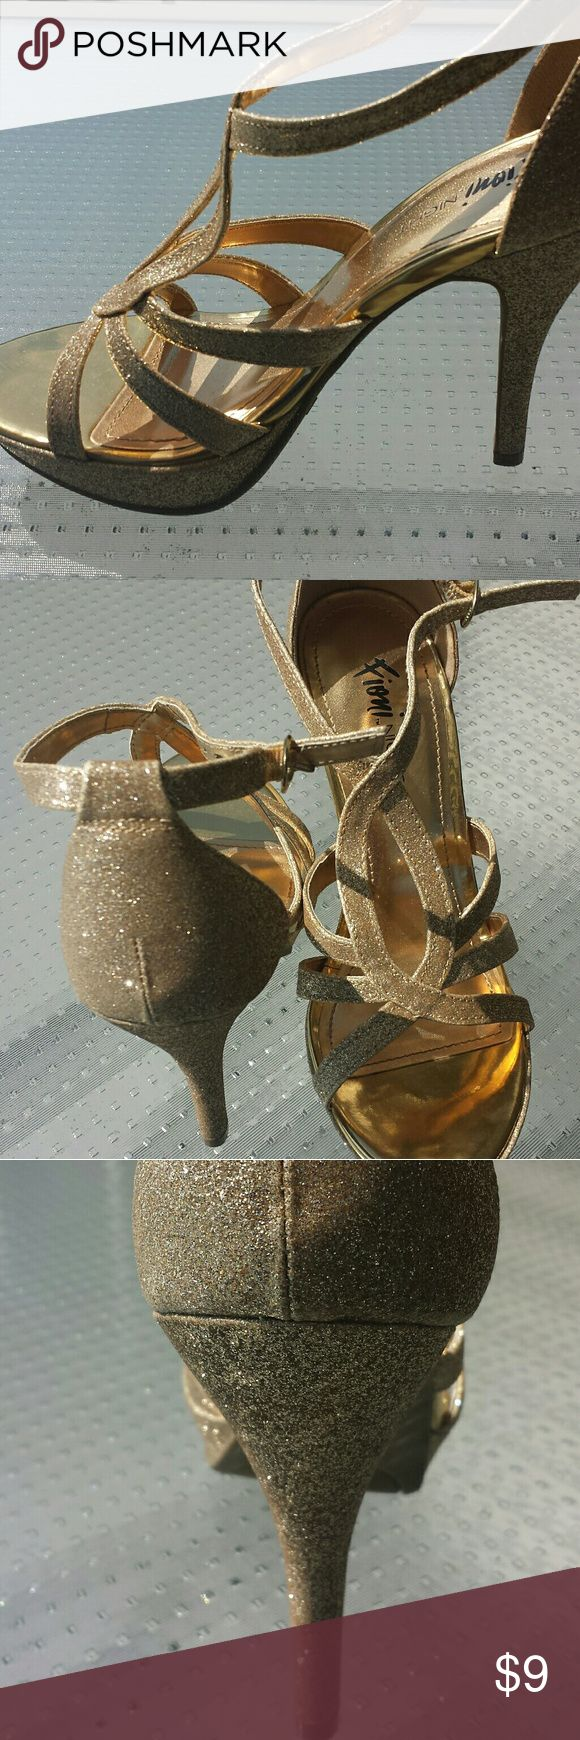 Holiday party 5 inch heels Holiday party sparkle gold 5 inch heels  size 7 Fioni Night Shoes Heels